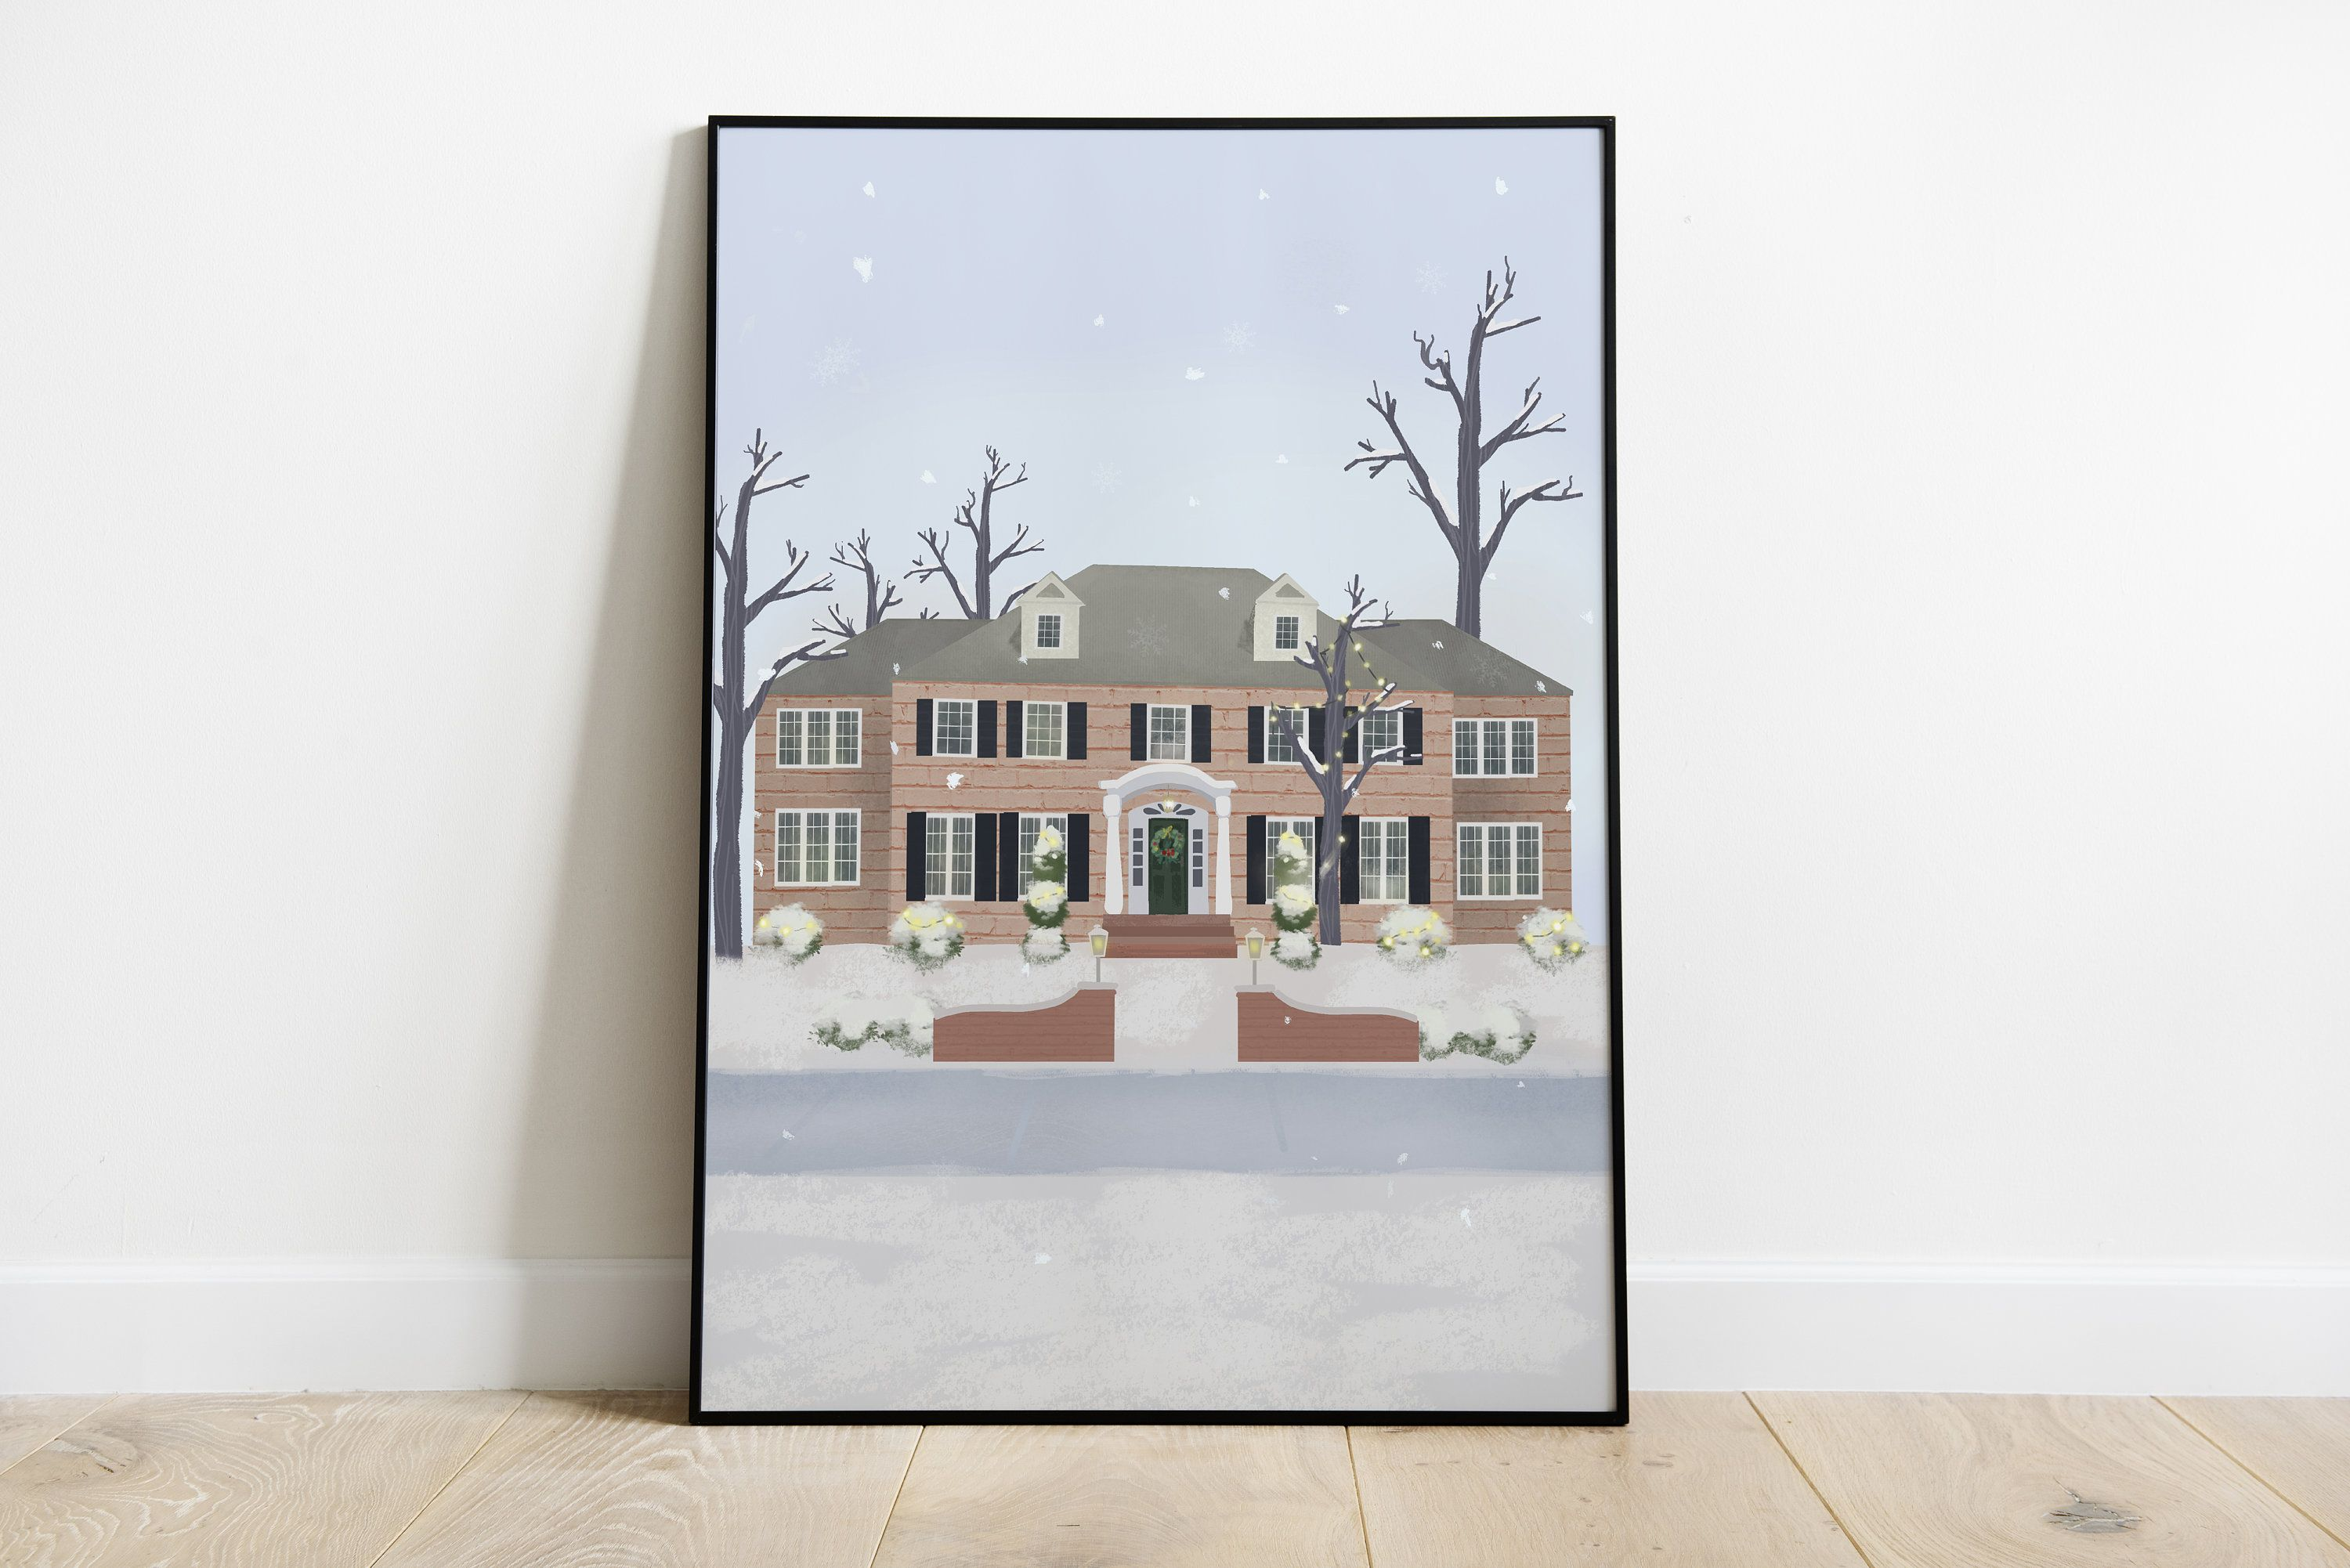 Home Alone House Movie Art Print Gift For Holidays Home Etsy Movie Art Print Art Print Gifts Movie Art